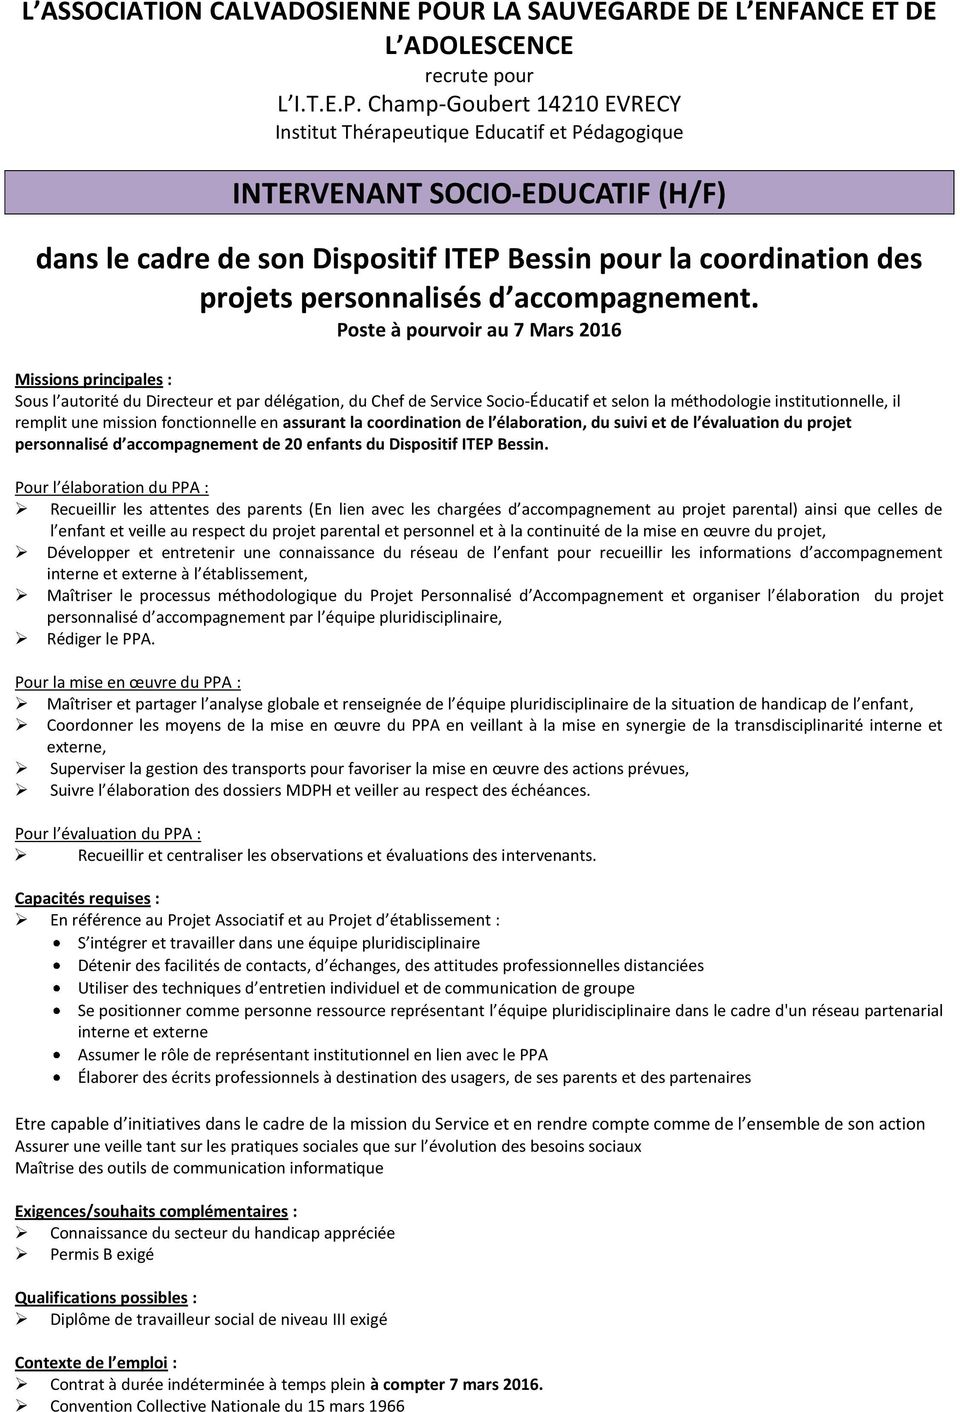 exemple de cv chef de service educatif